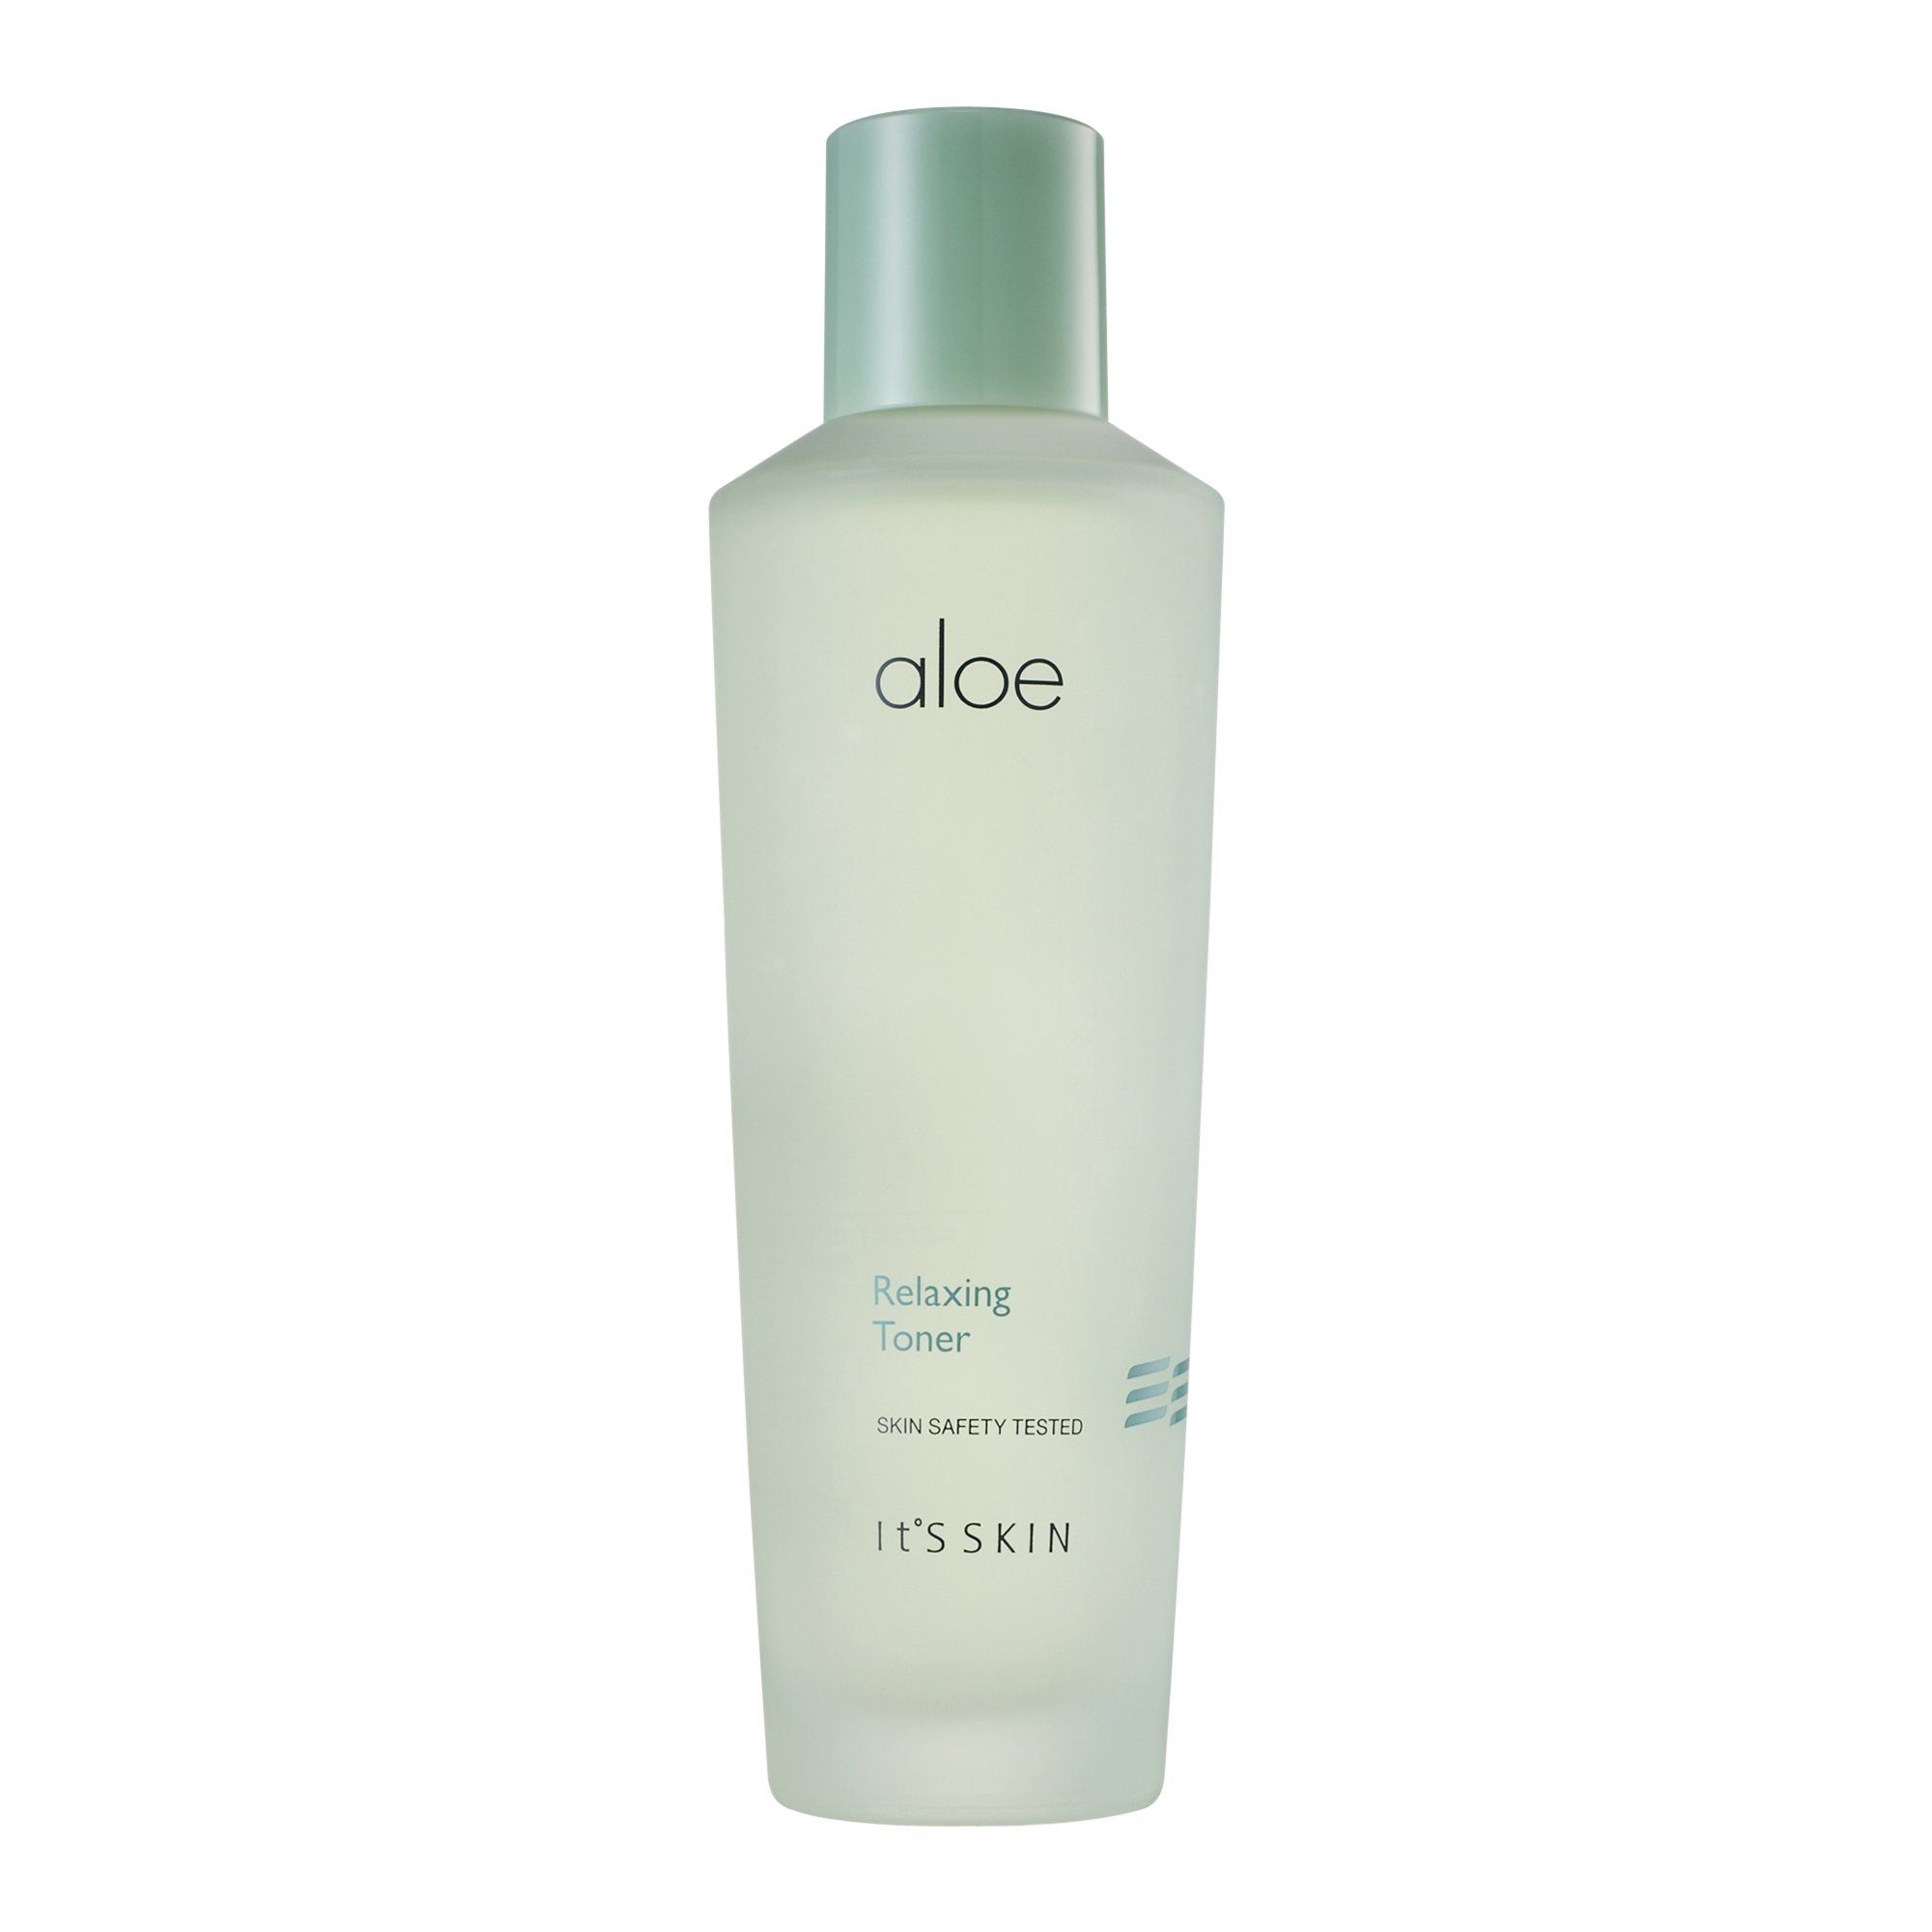 Health & Beauty > Personal Care > Cosmetics > Skin Care > Toners & Astringents > Toners - Aloe Relaxing Toner Tonik Do Twarzy 150 Ml